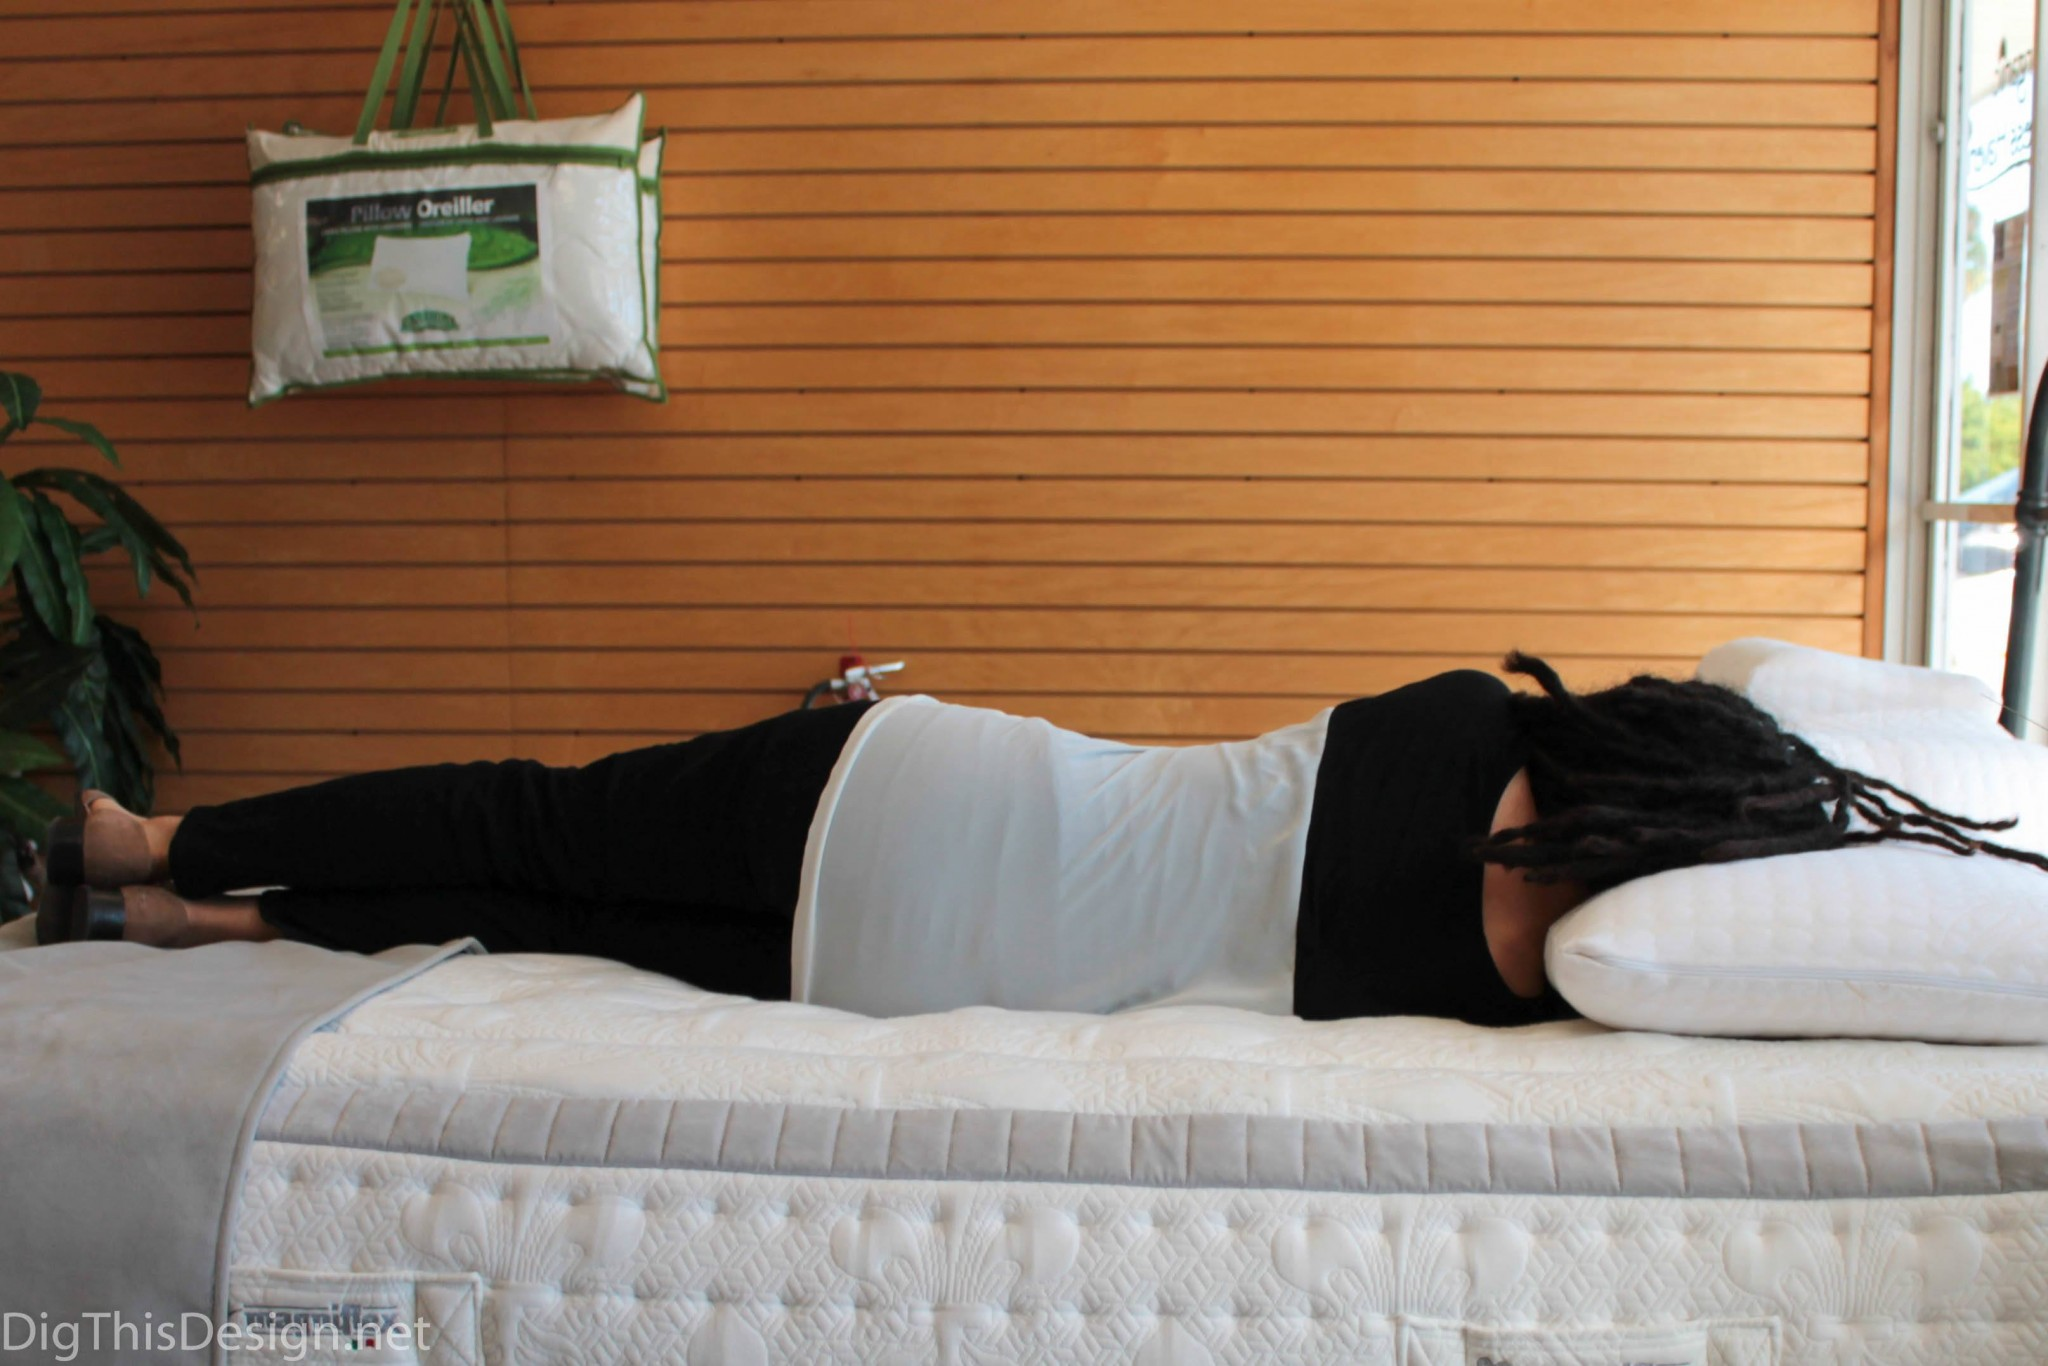 Person Laying Down On A Memory Foam Mattress To Test Spine Alignment And Comfort